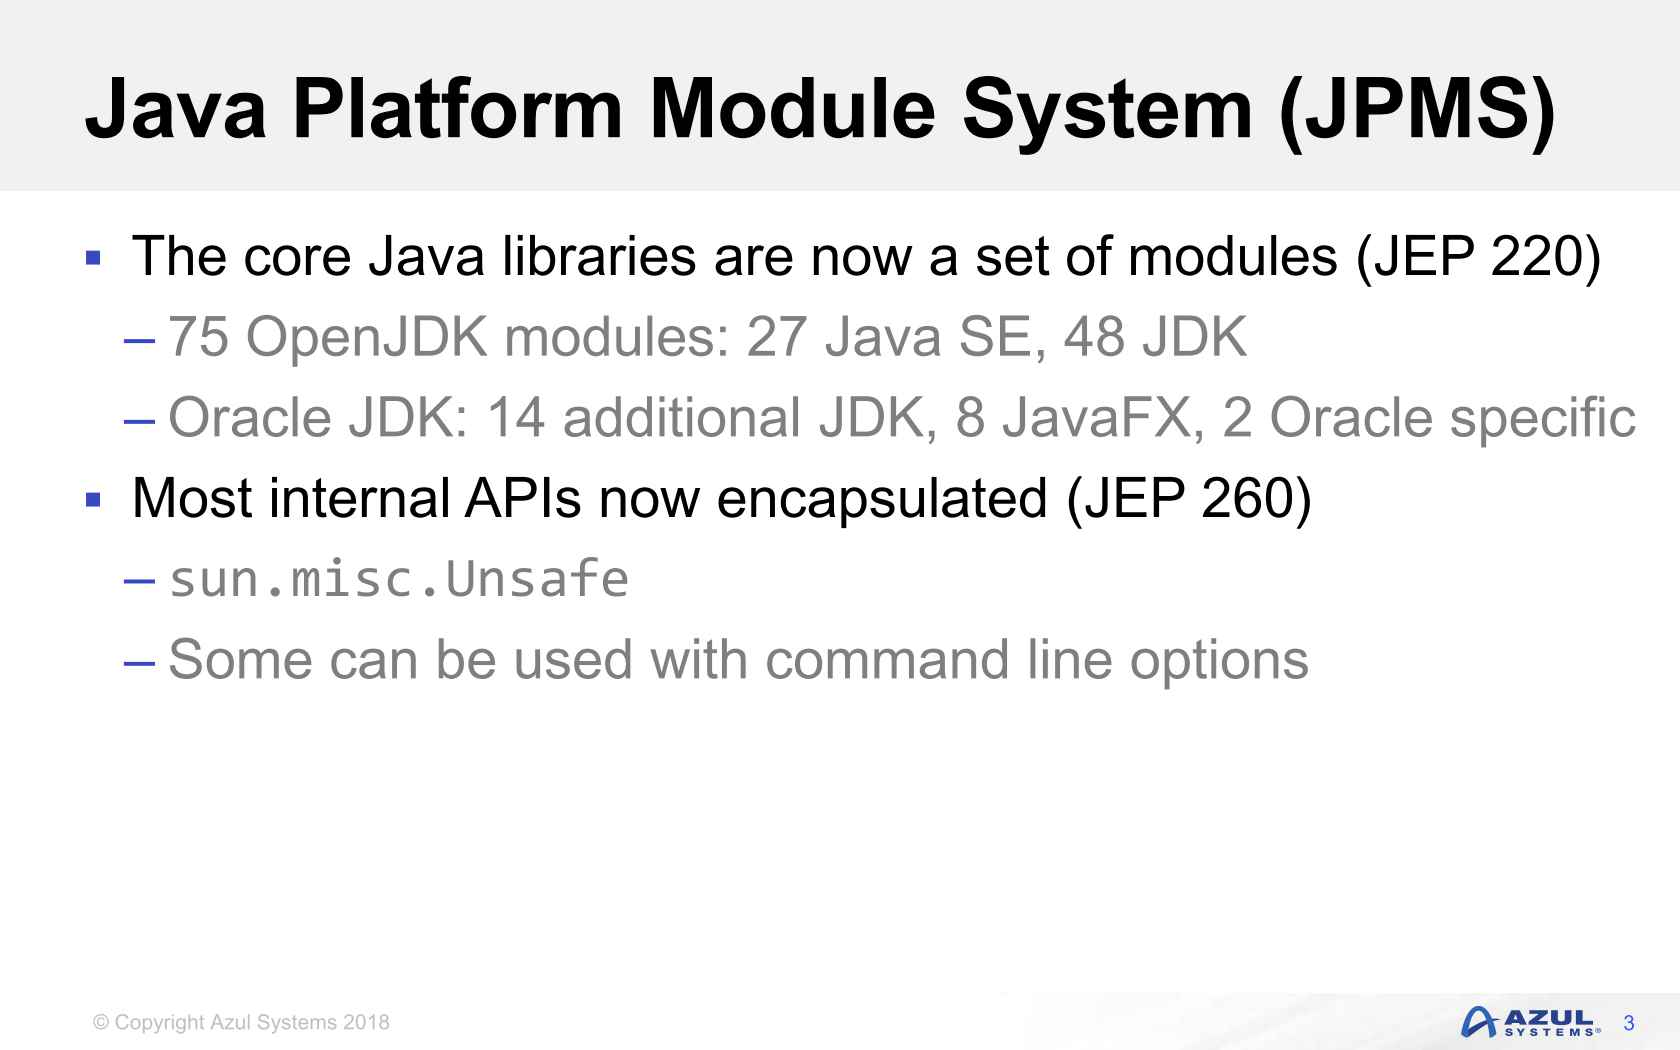 JDK 9, 10, 11 and beyond: Delivering New Features to the JDK